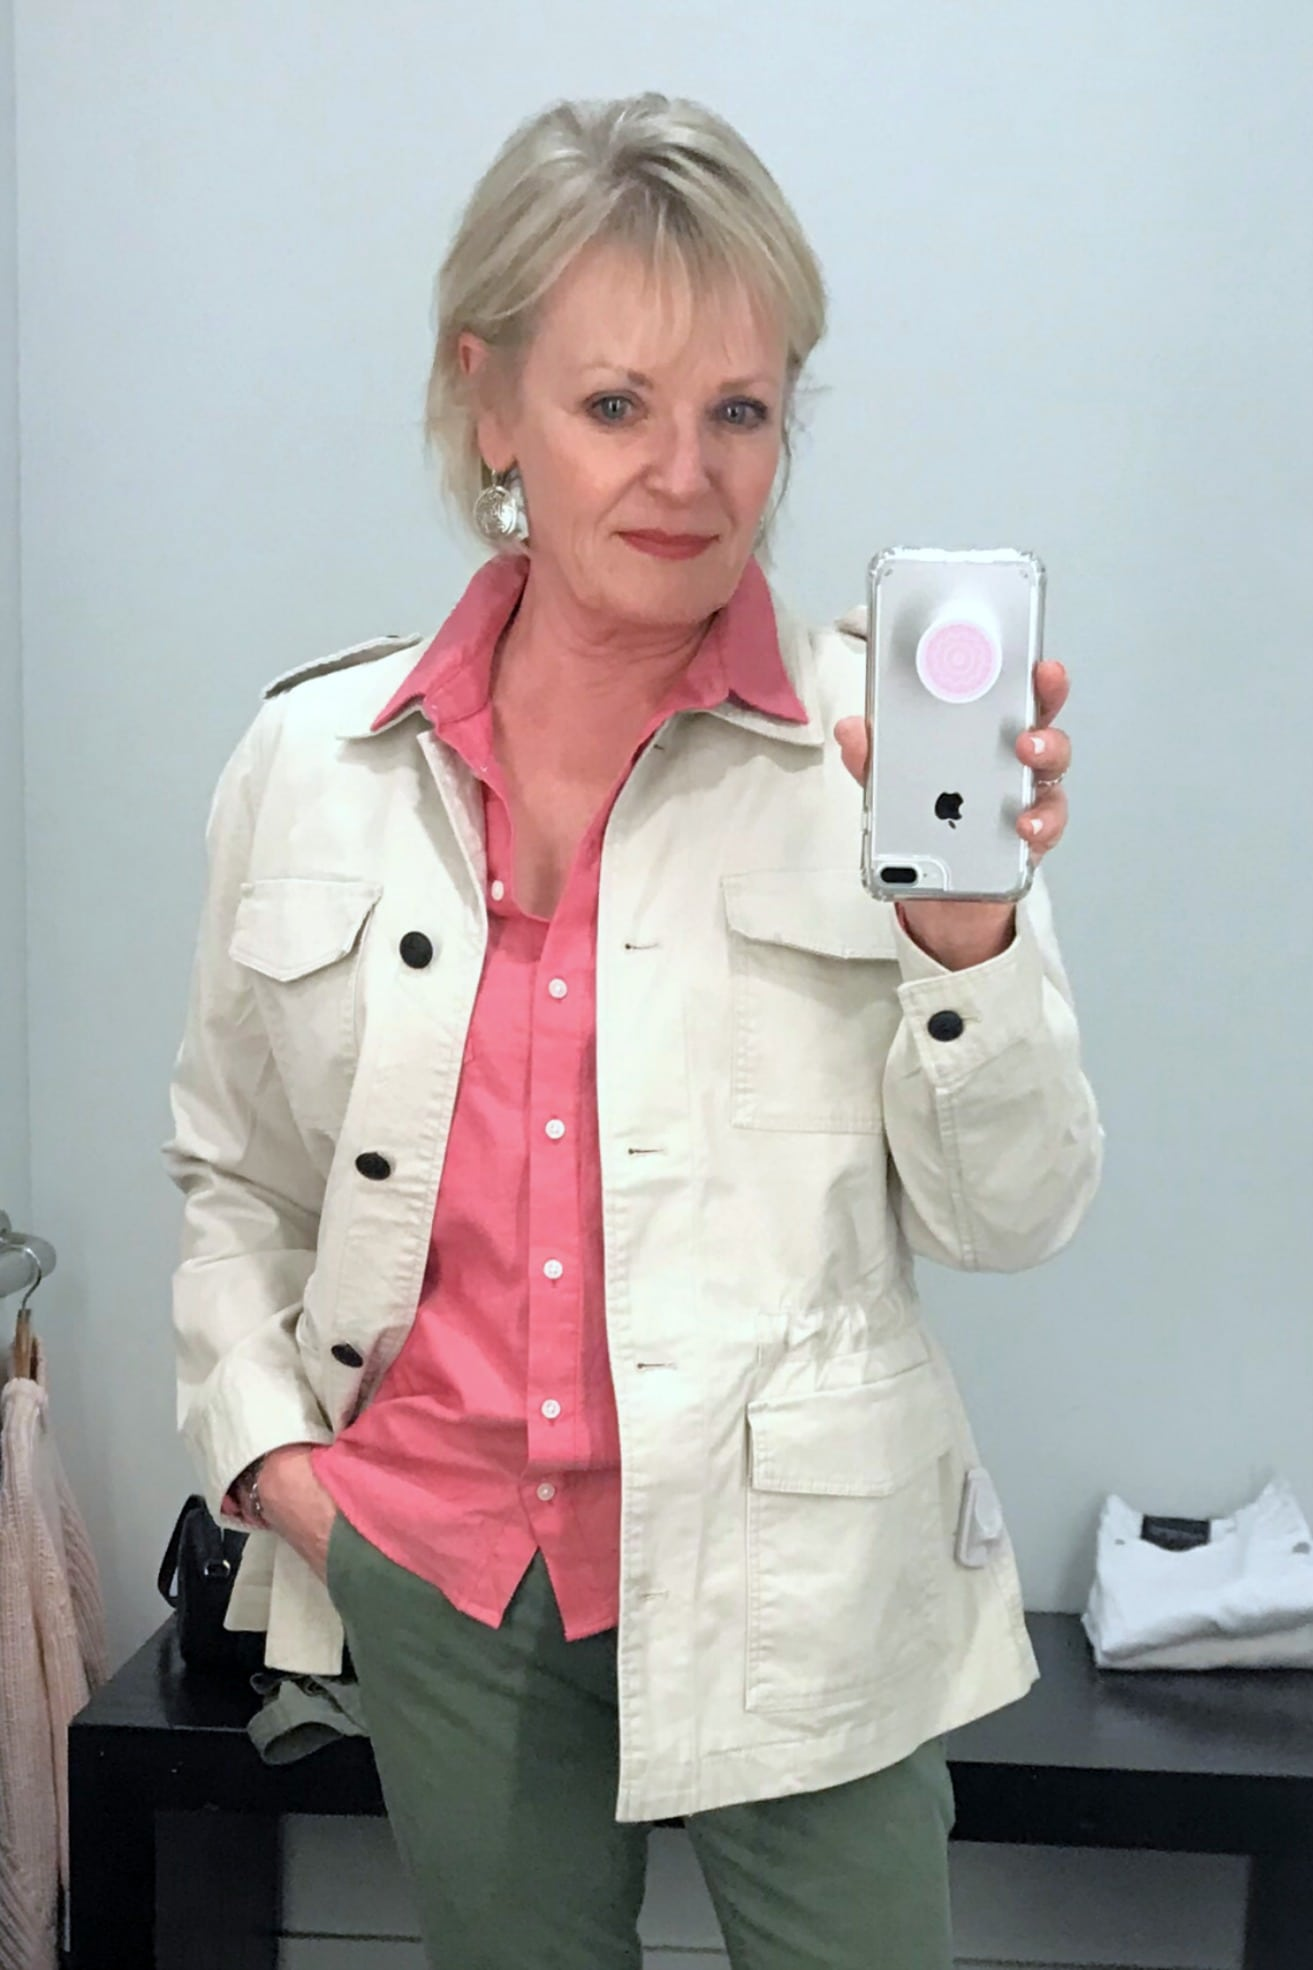 Jennifer Connolly of A Well Styled aALAife wearing oxford shirt and utility jacket from Banana Republic